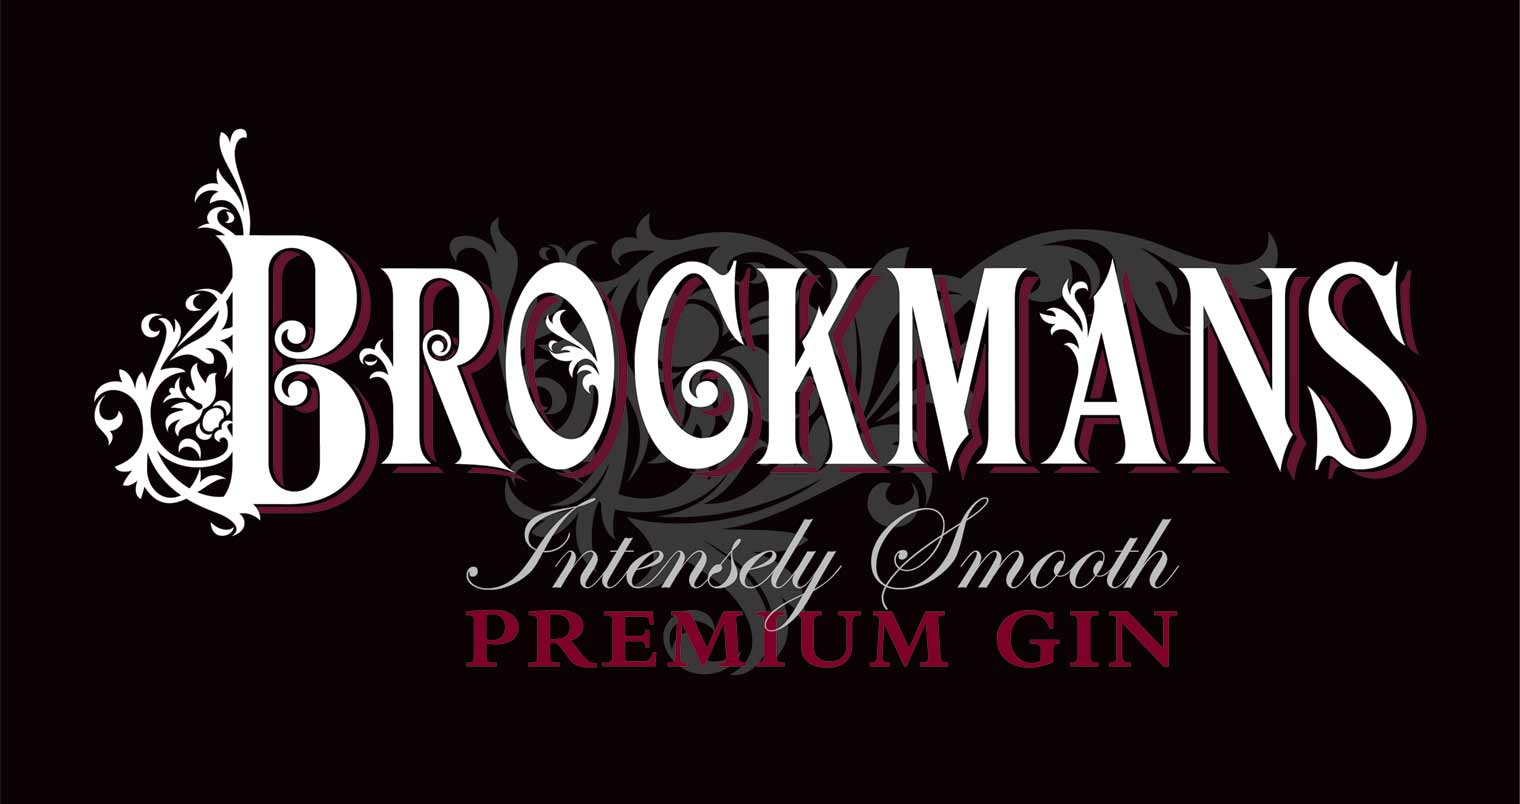 Brockmans to Host Gin Masterclass at Dead Rabbit in New York City